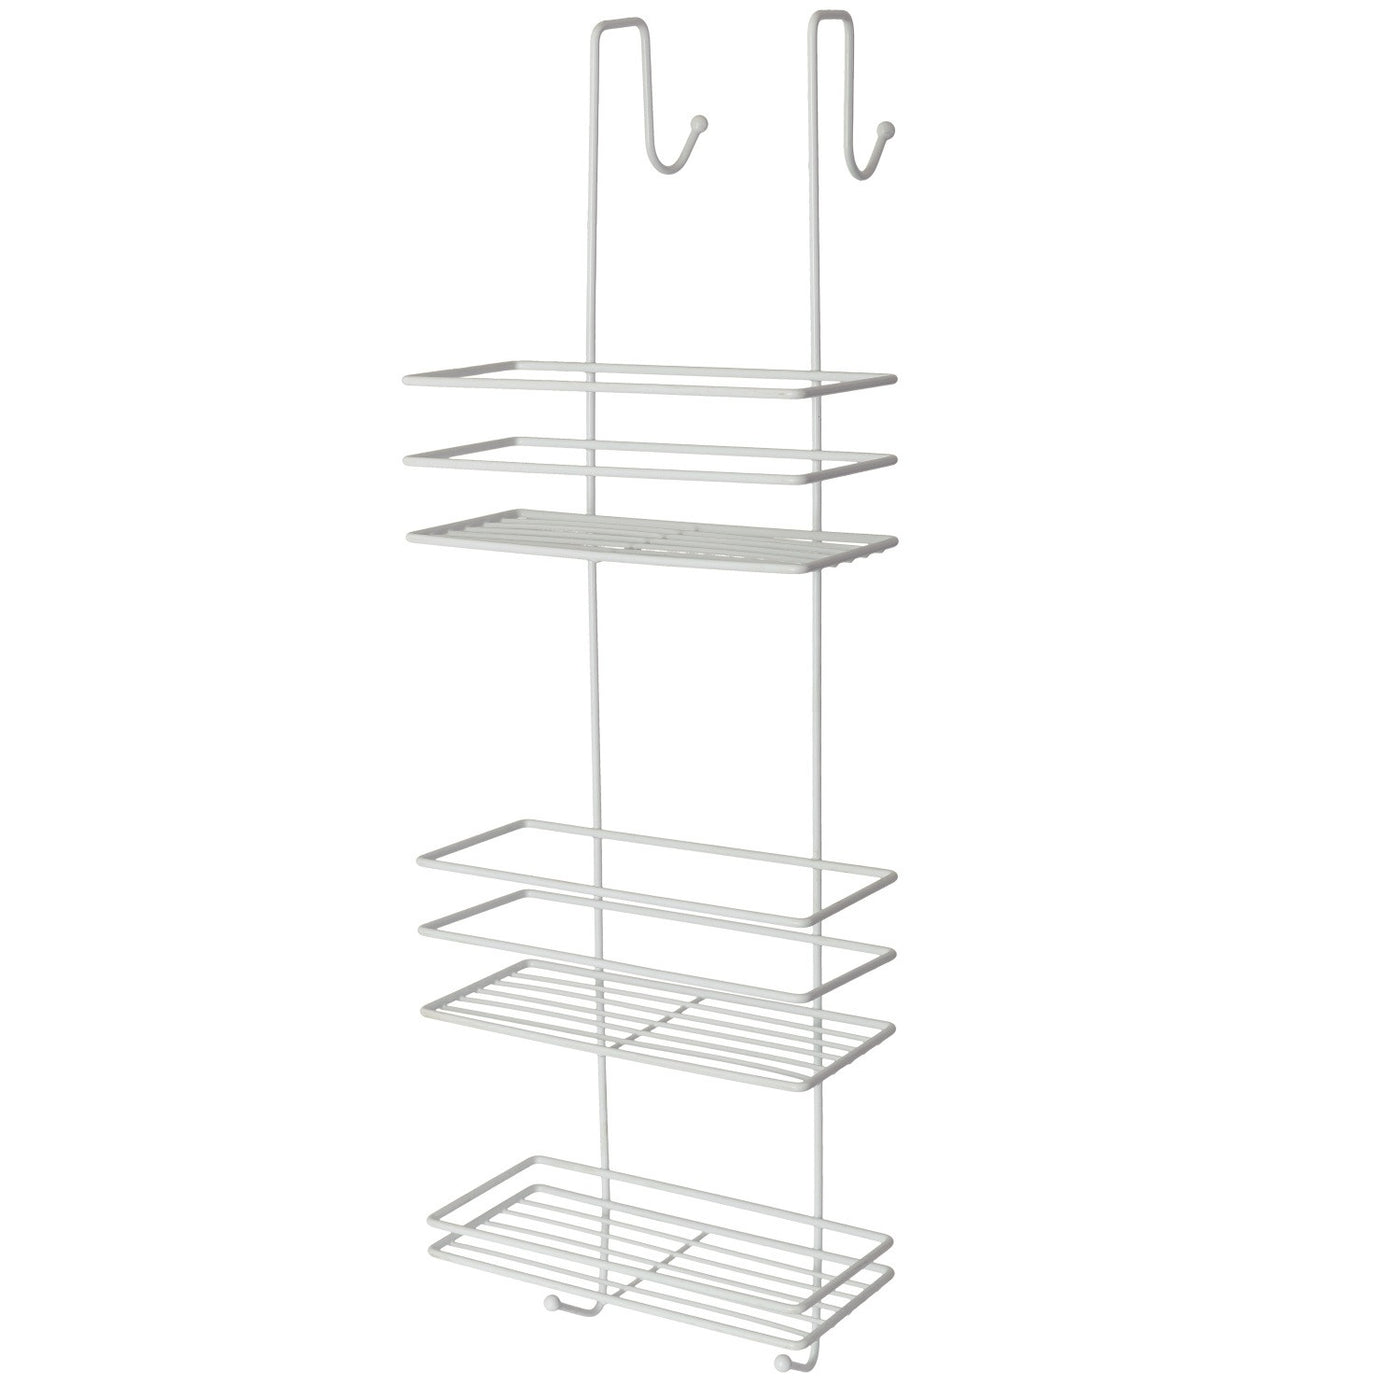 Blue Canyon BA0543/WH 3 Tier Shower Caddy White – W Hurst & Son (IW) Ltd